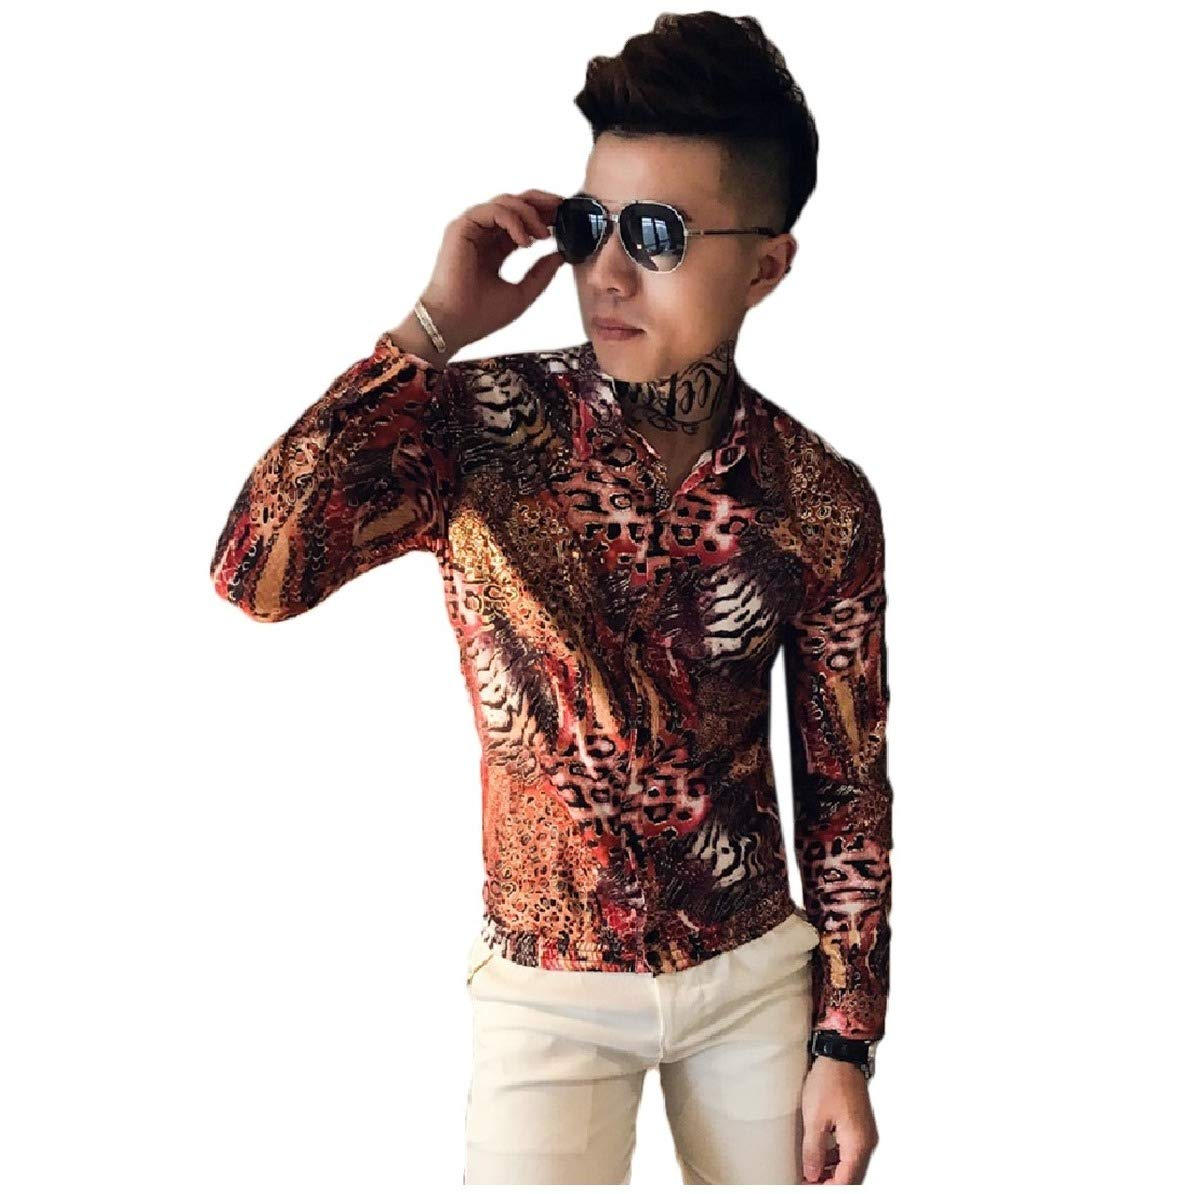 Comaba Mens Nightclub Style Satin Silky Leopard Print Fashion Woven Shirt